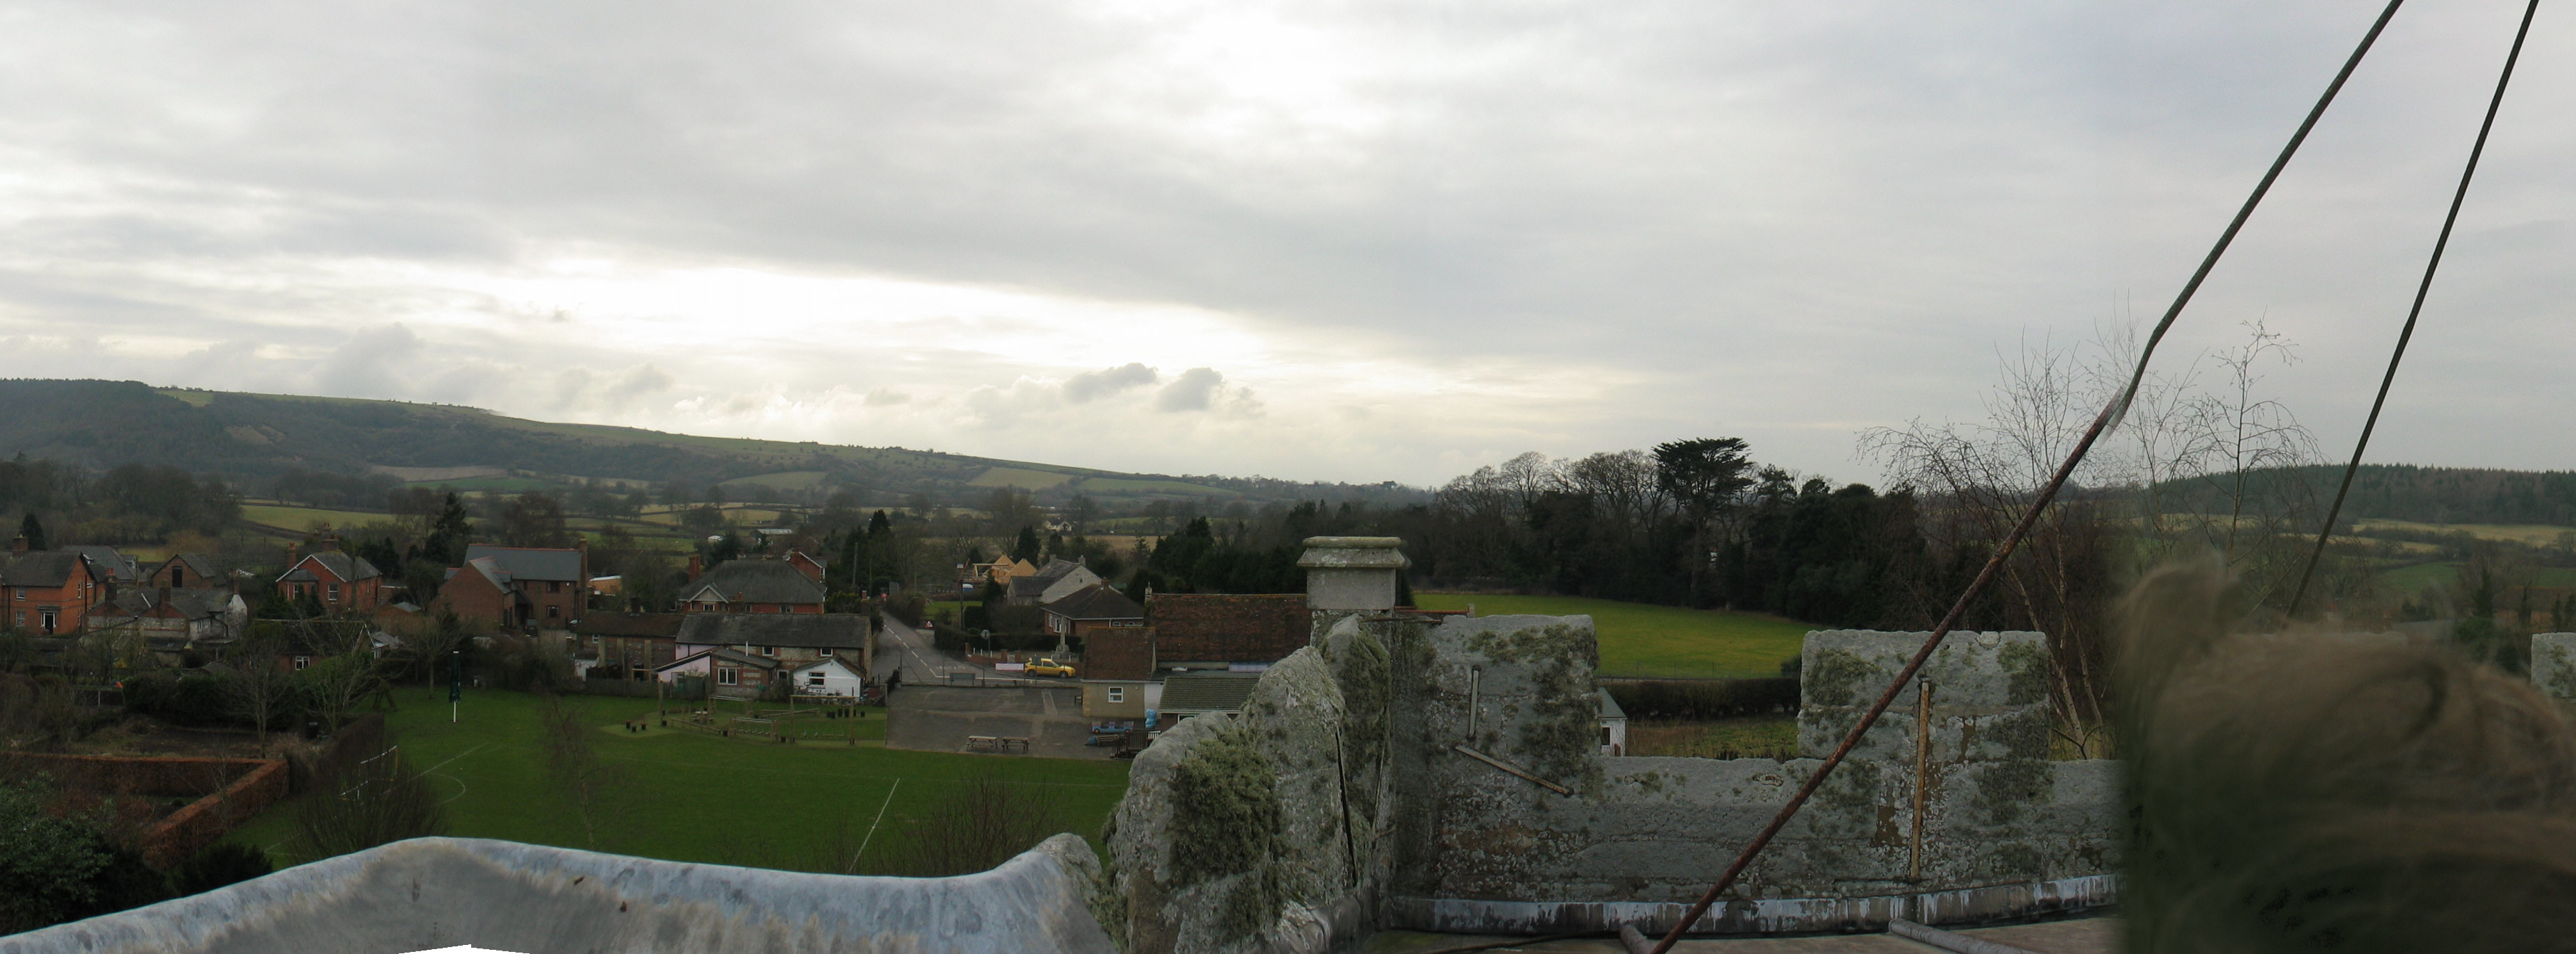 South View from Church Tower